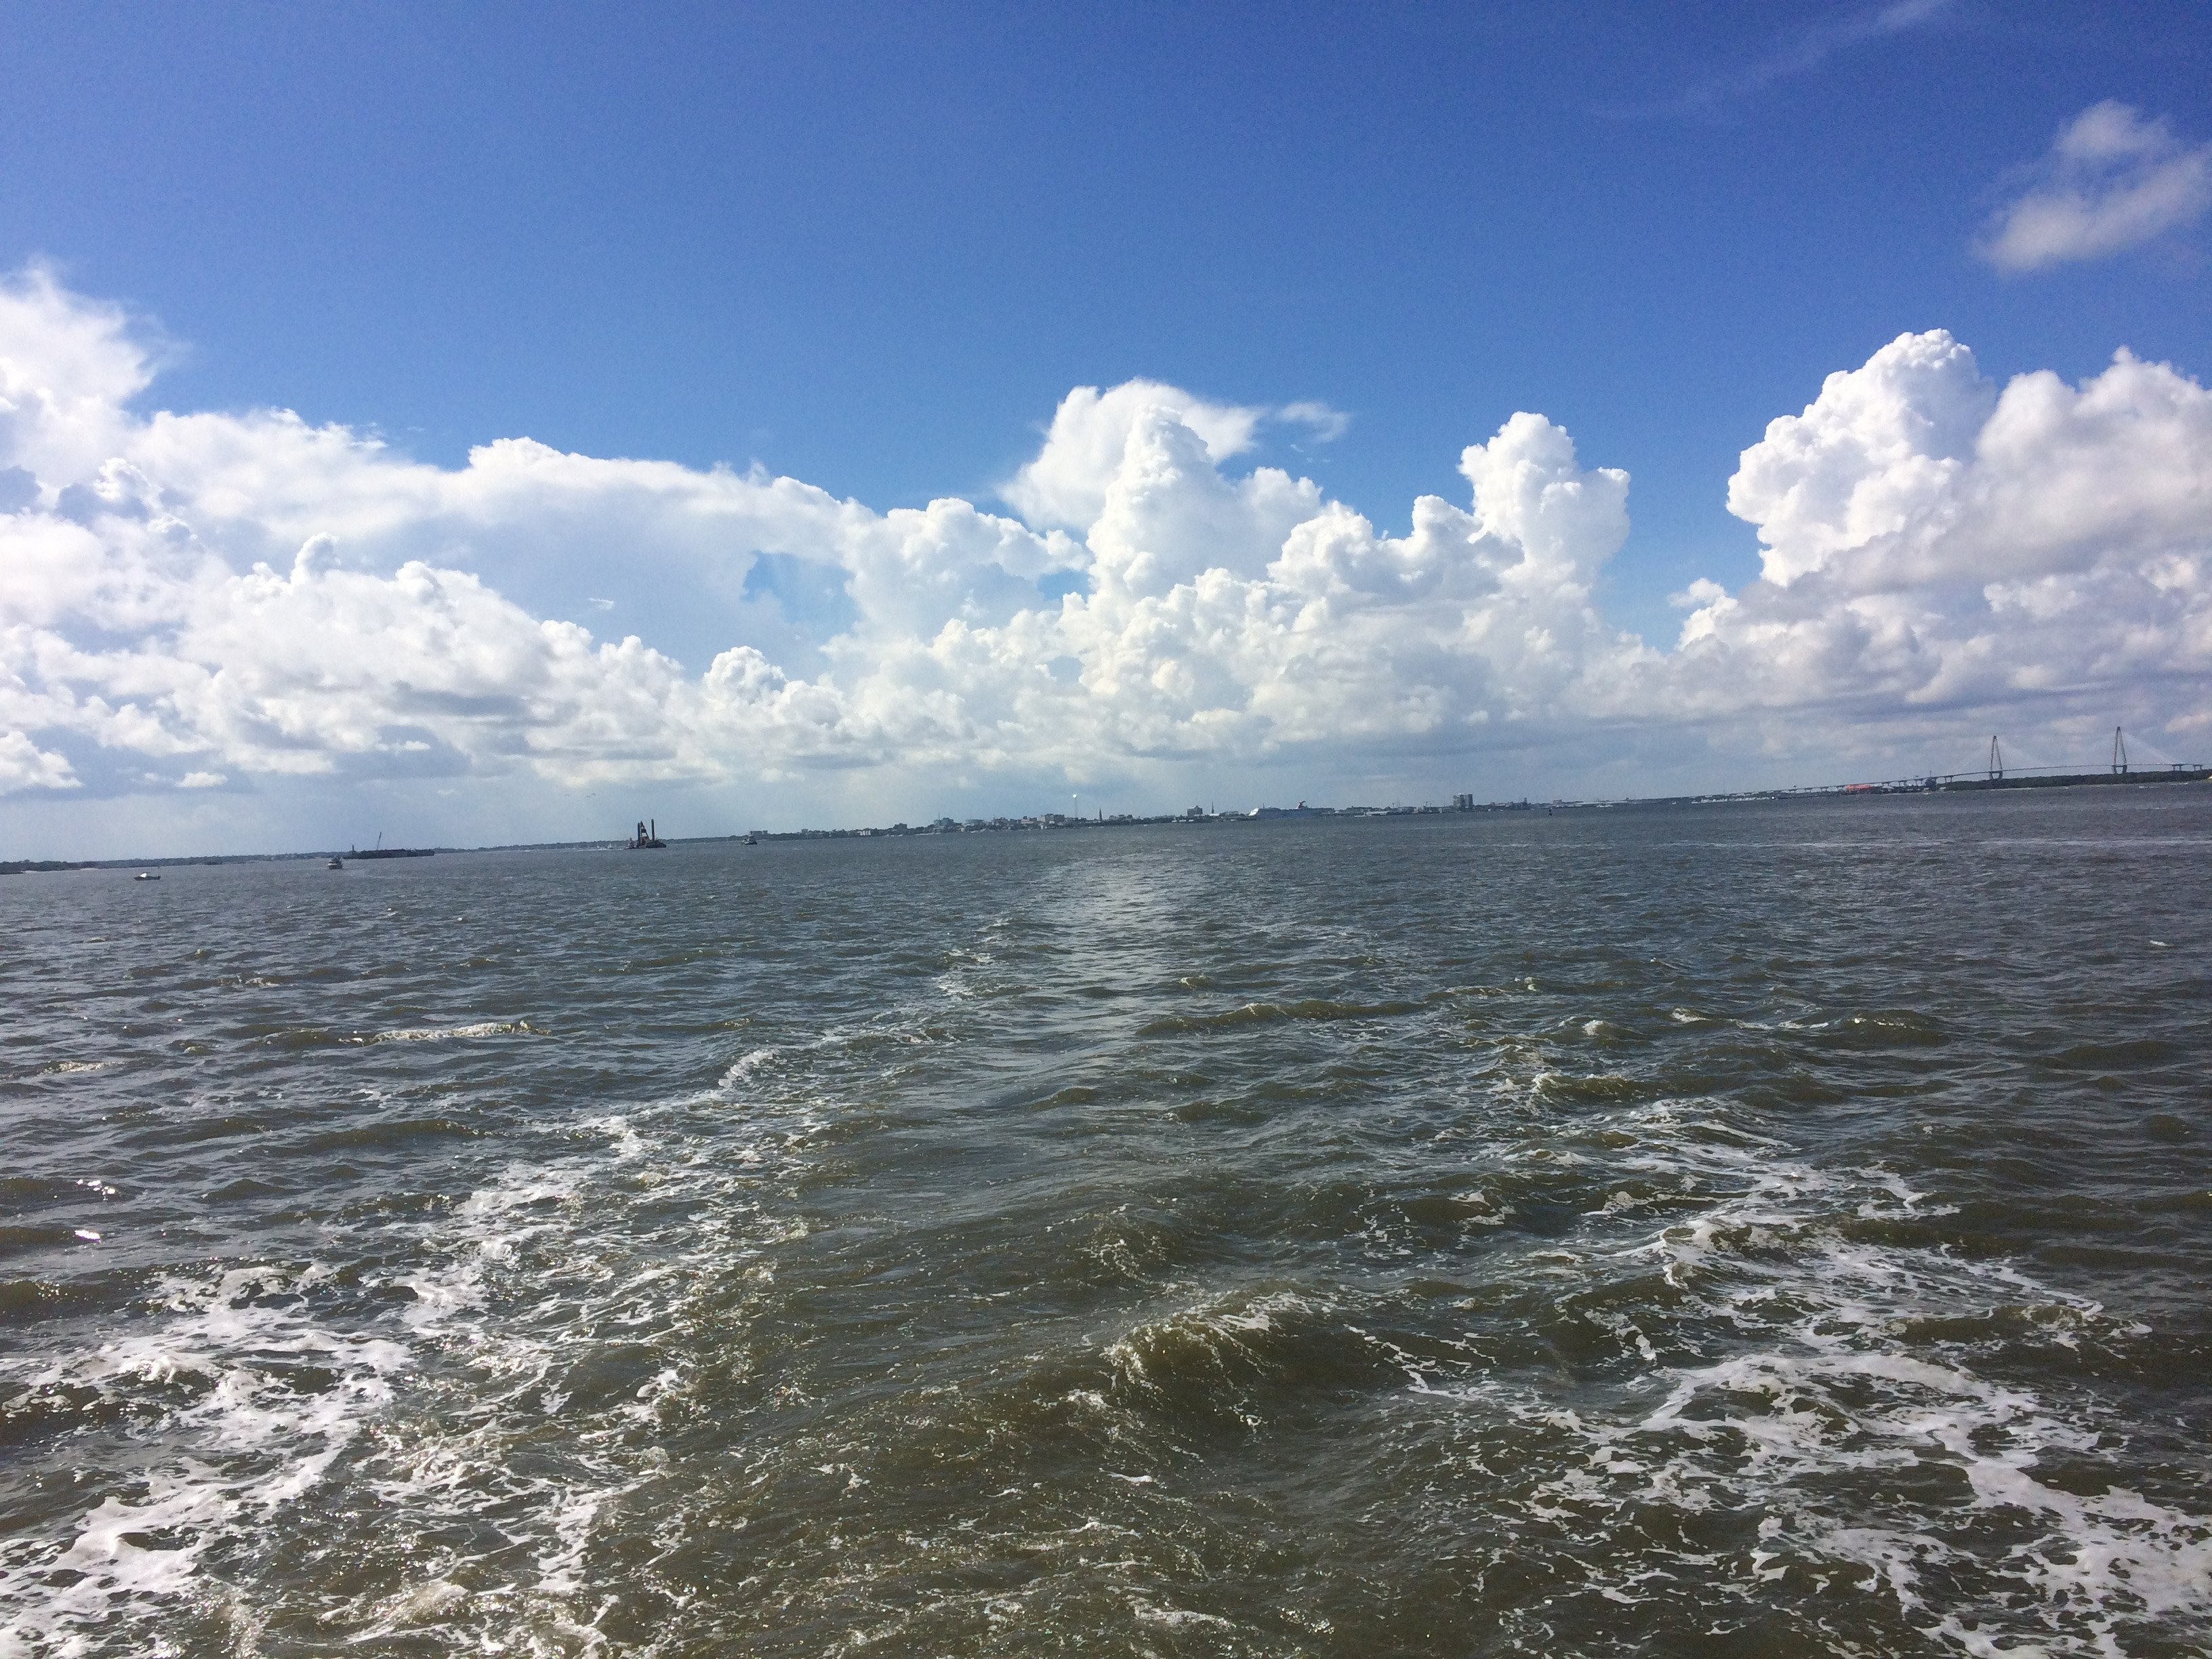 Beautiful Sky while on a Tour of the Charleston Harbor